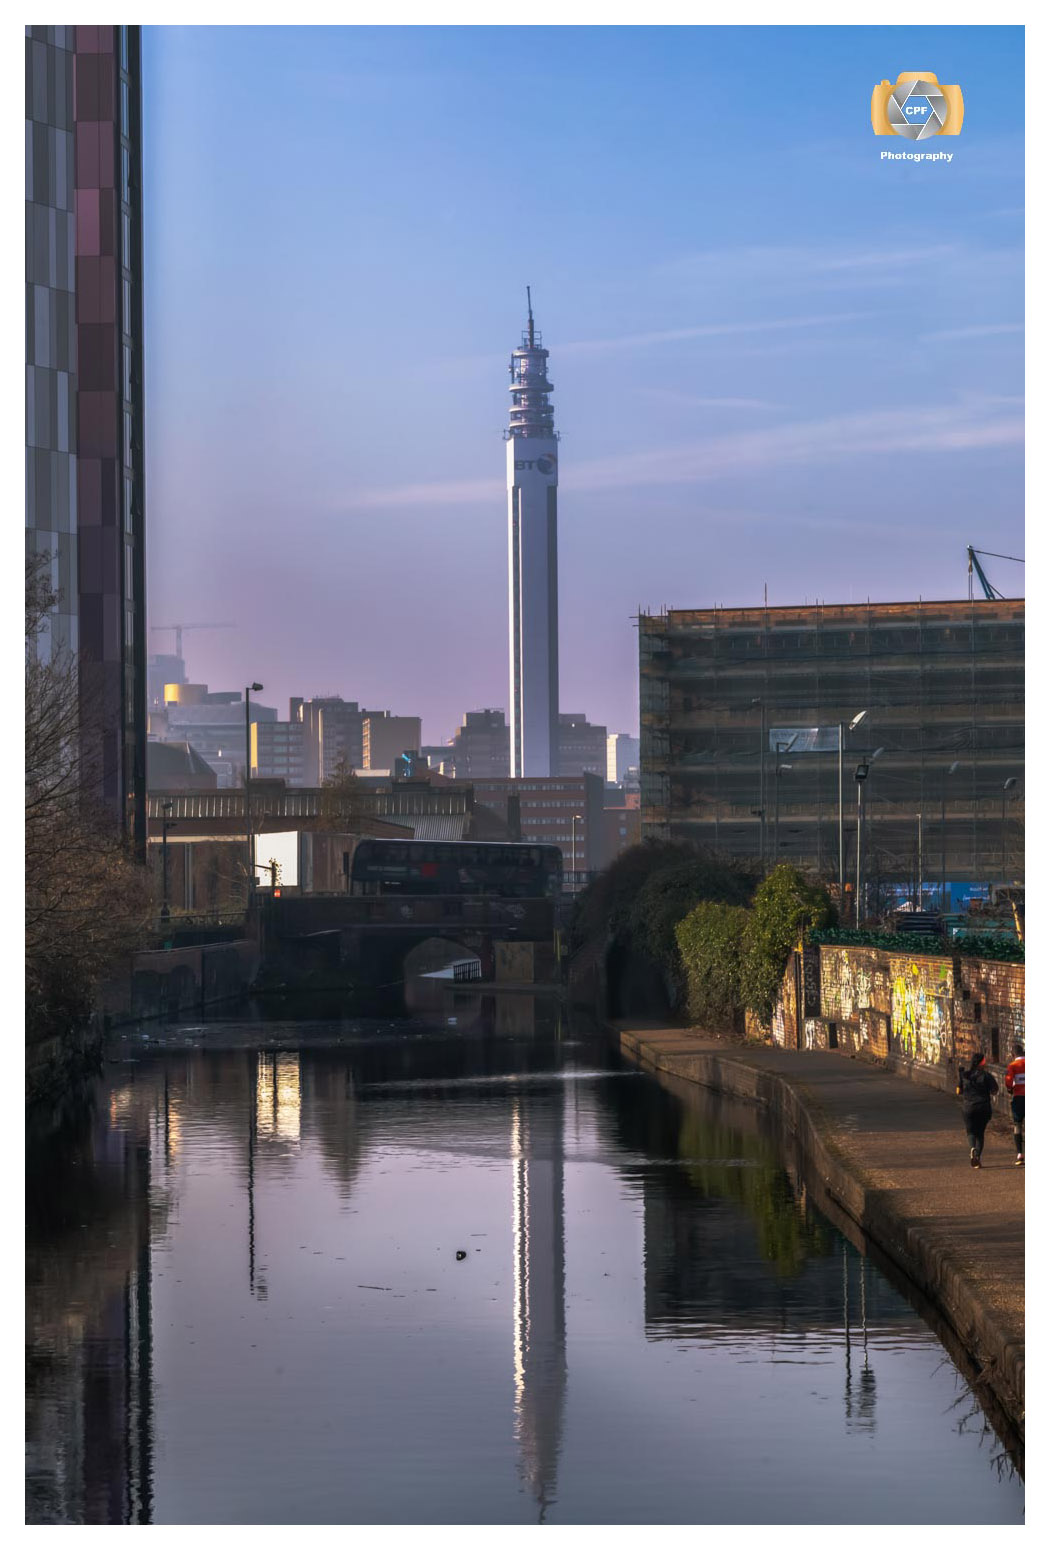 BT Tower Reflections No 3